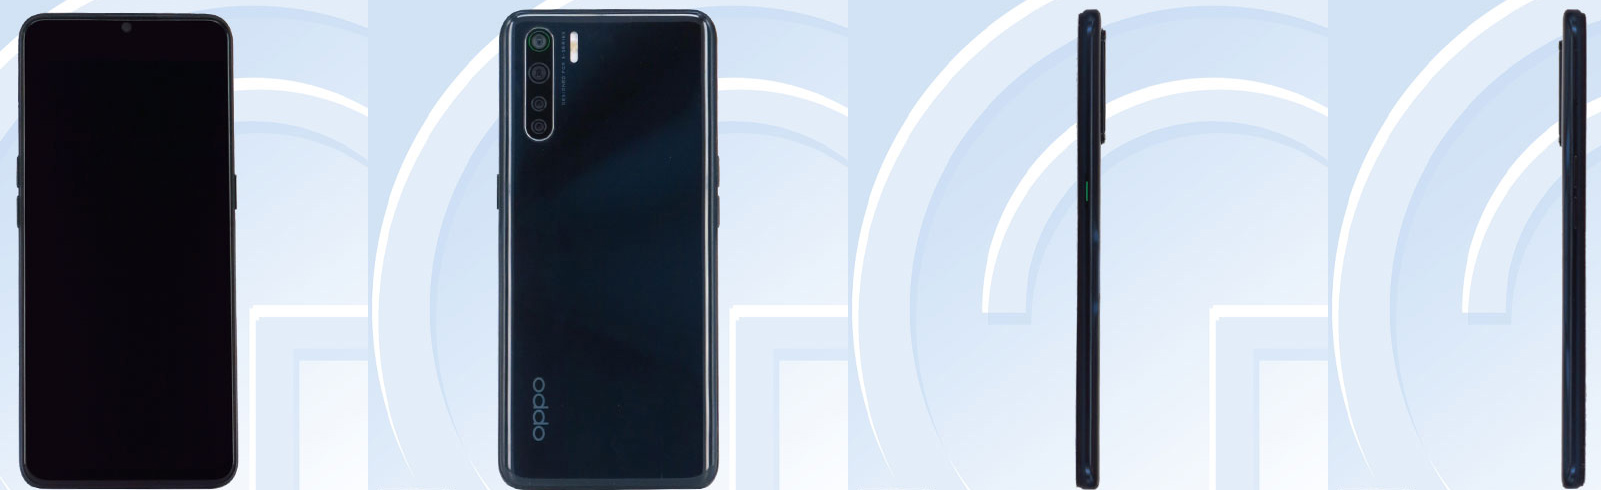 Oppo Reno3 specifications appear on TENAA